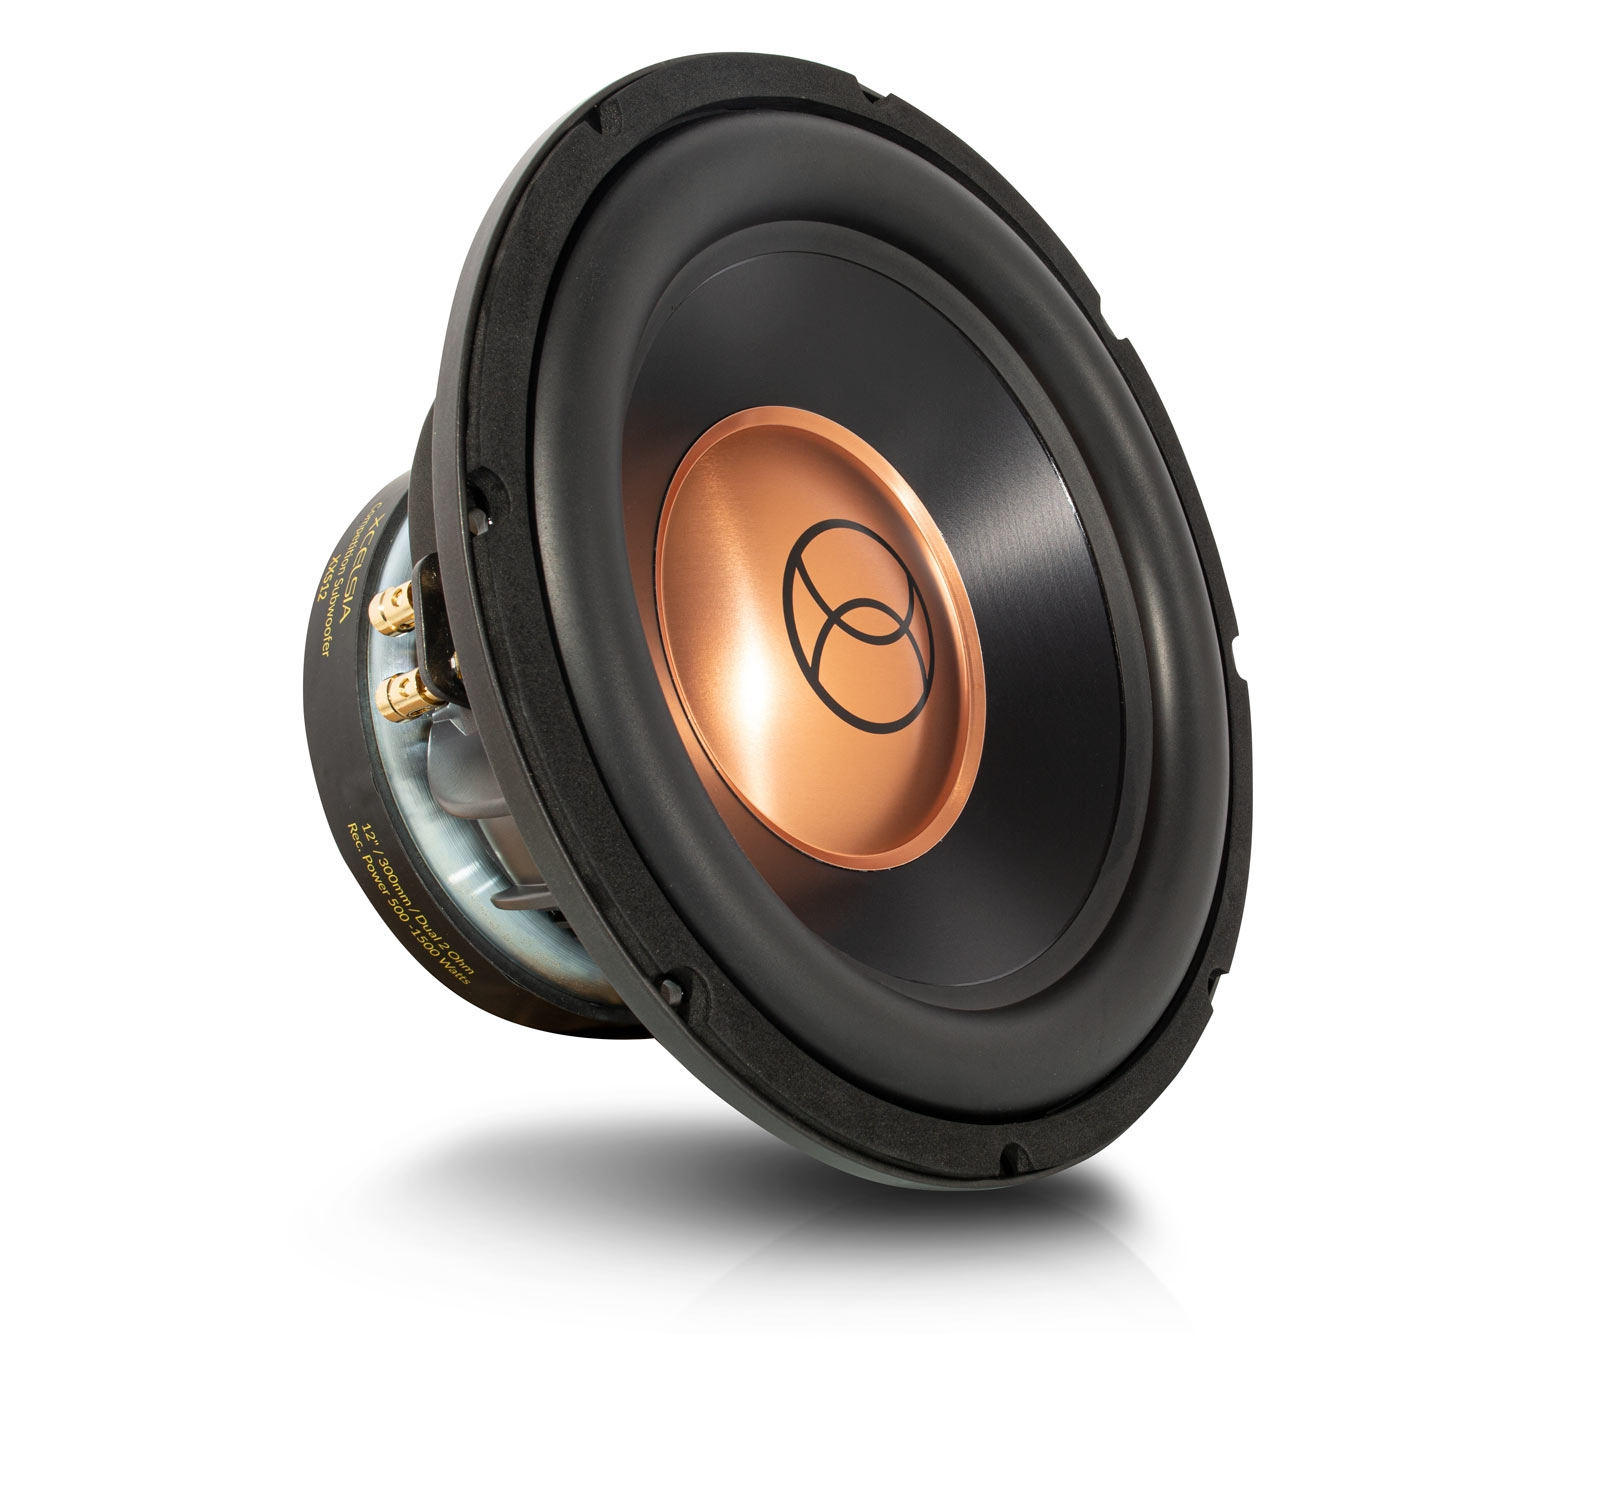 Xxs12 competition subwoofer SQ